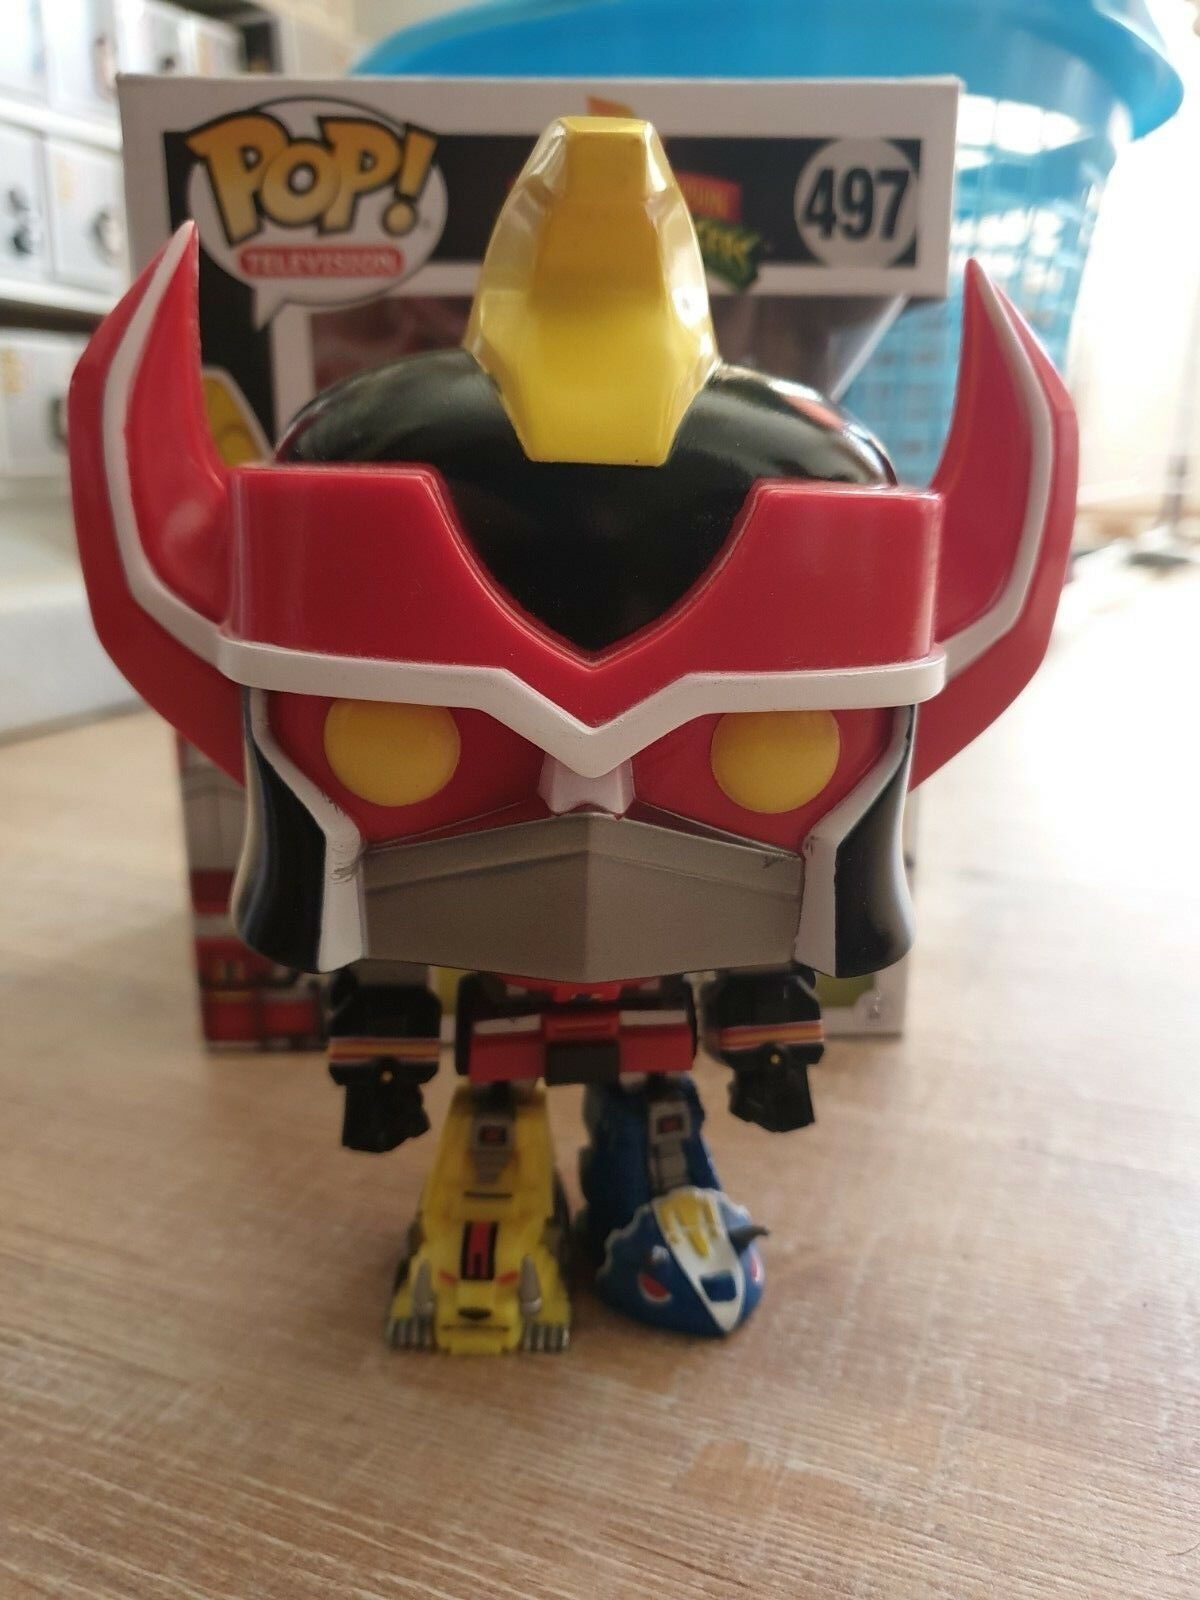 divertimentoko Pop  energia Rangers 497 Megazord SDCC 2017 Exclusive